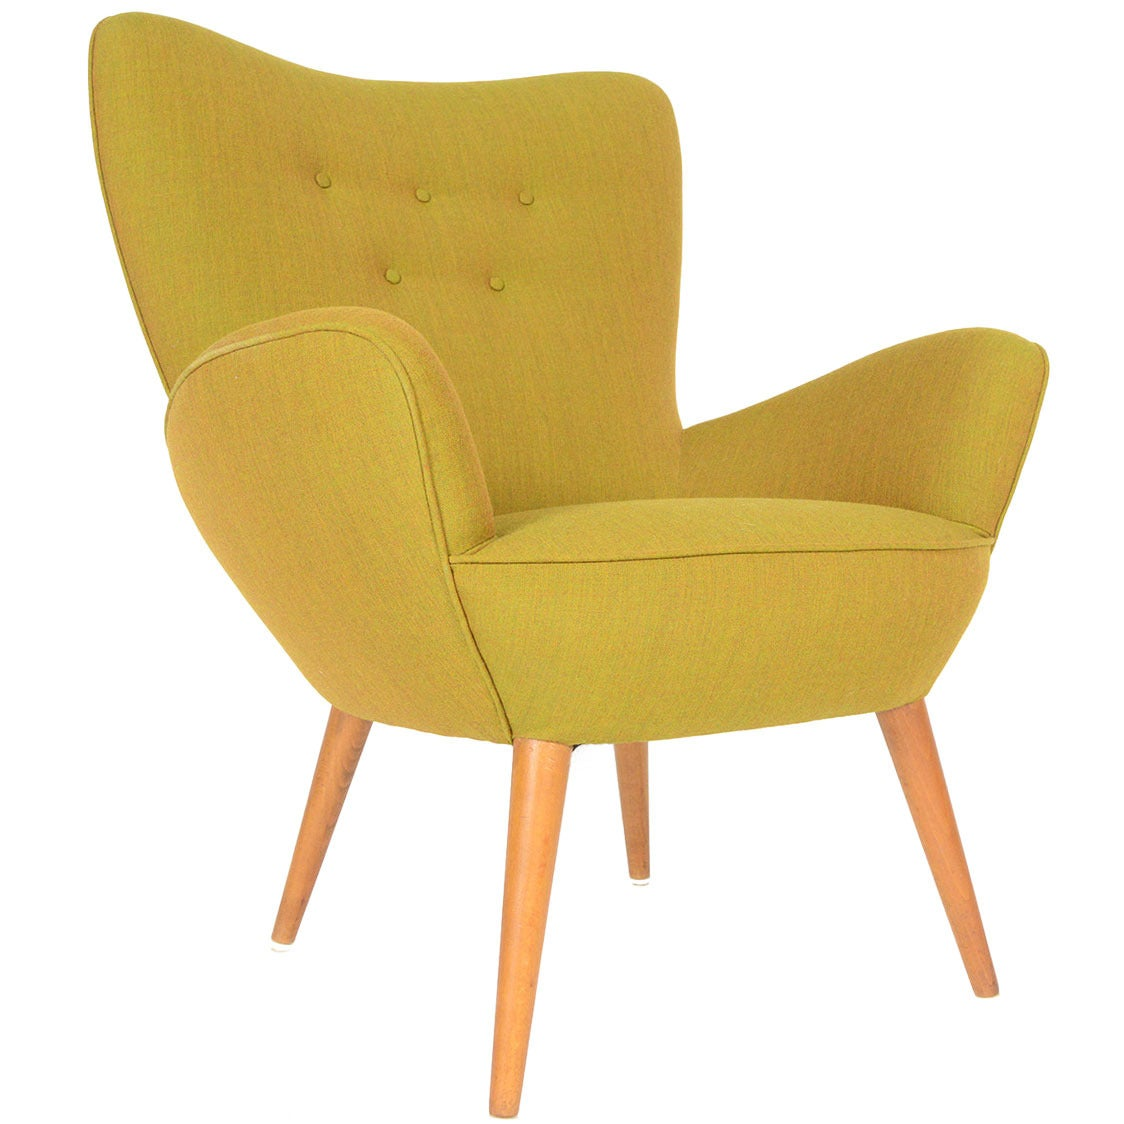 Danish Modern Lounge Chair in Vivid Green For Sale at 1stdibs